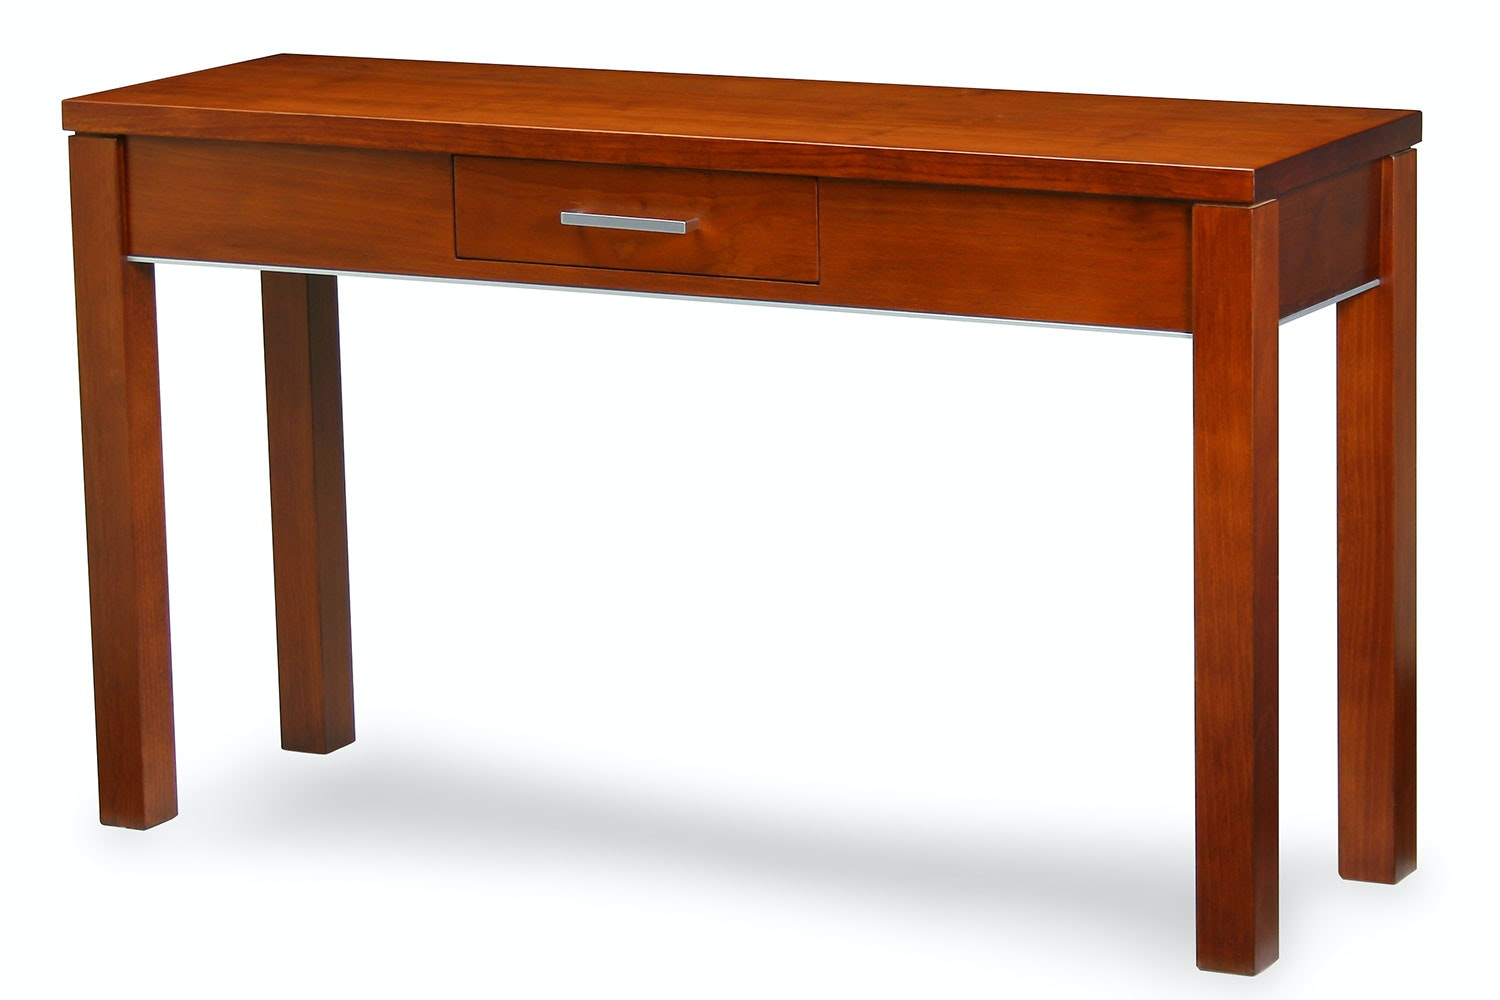 Rimu Metro Hall Table by Coastwood Furniture